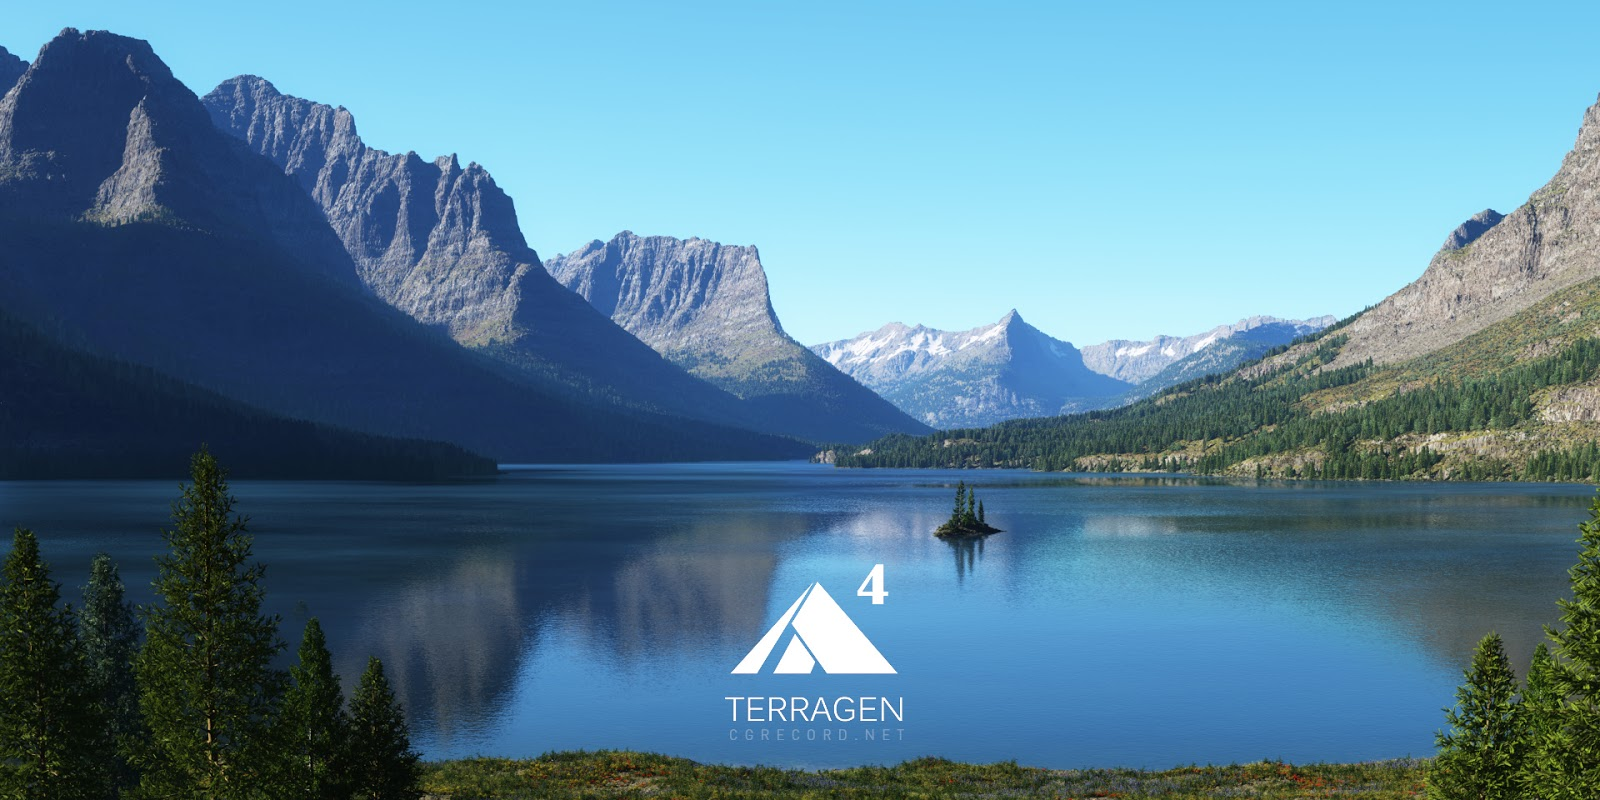 Planetside Terragen 4 is now available | Computer Graphics Daily News